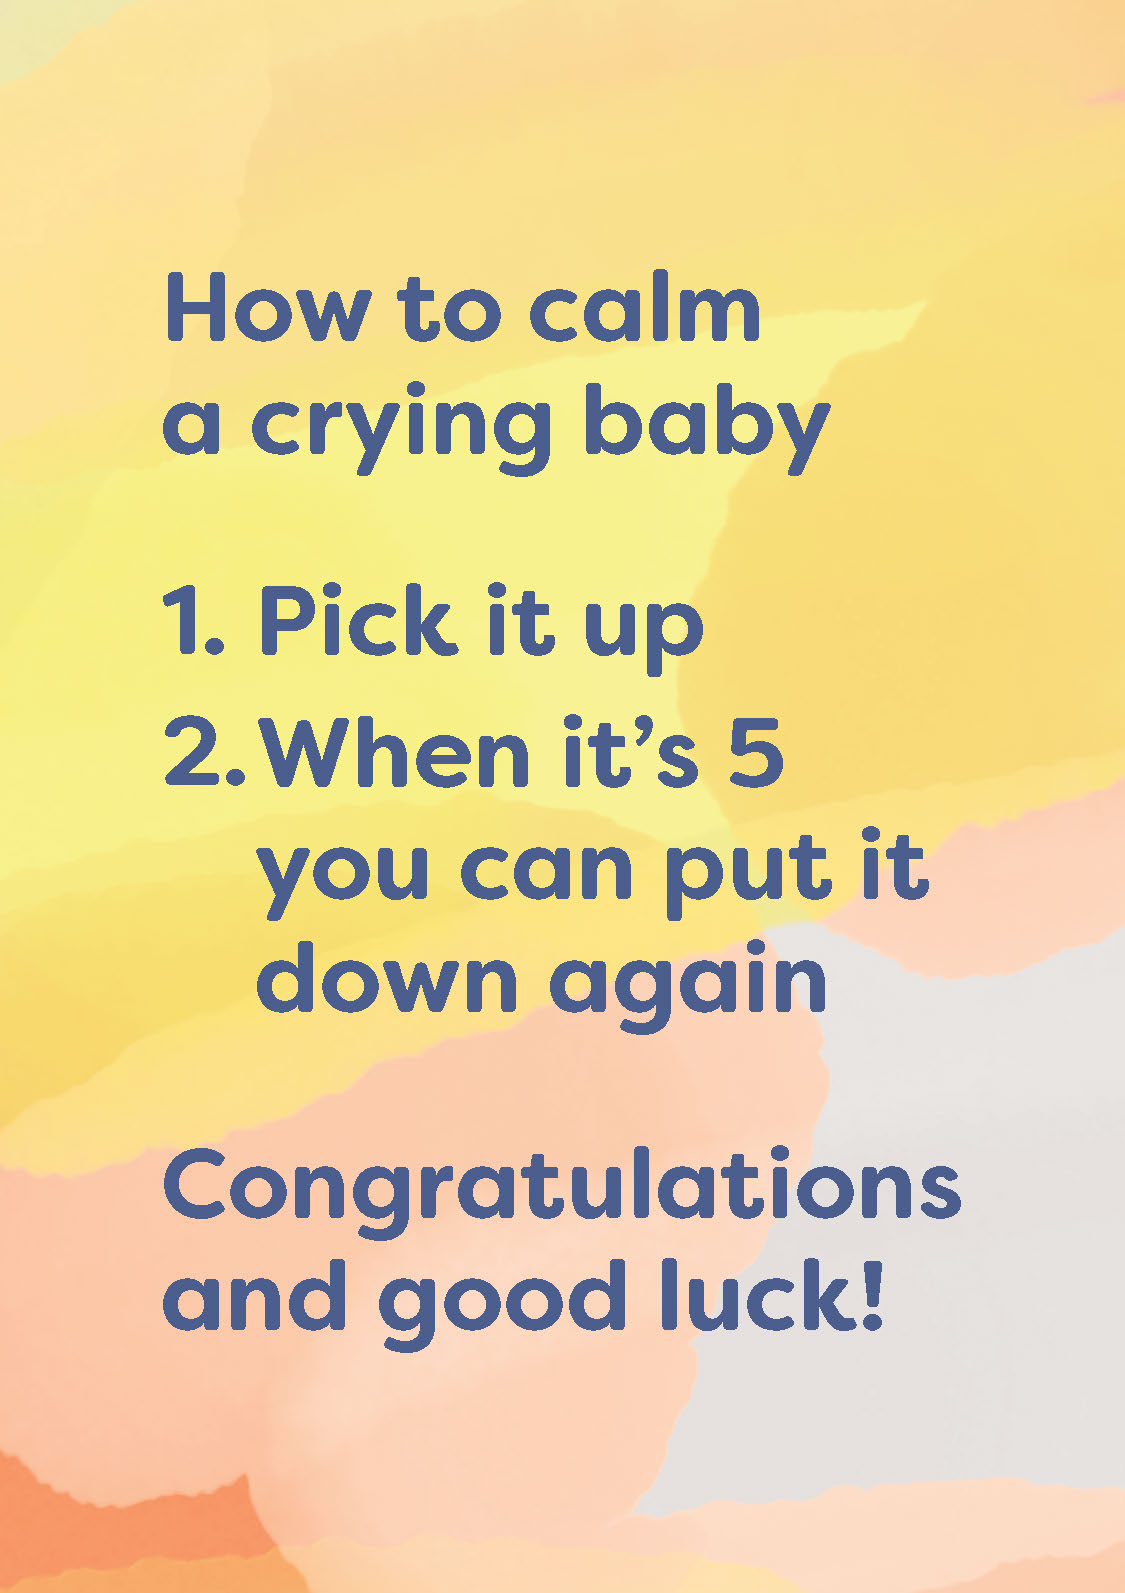 How To Calm a Crying Baby New Baby Card